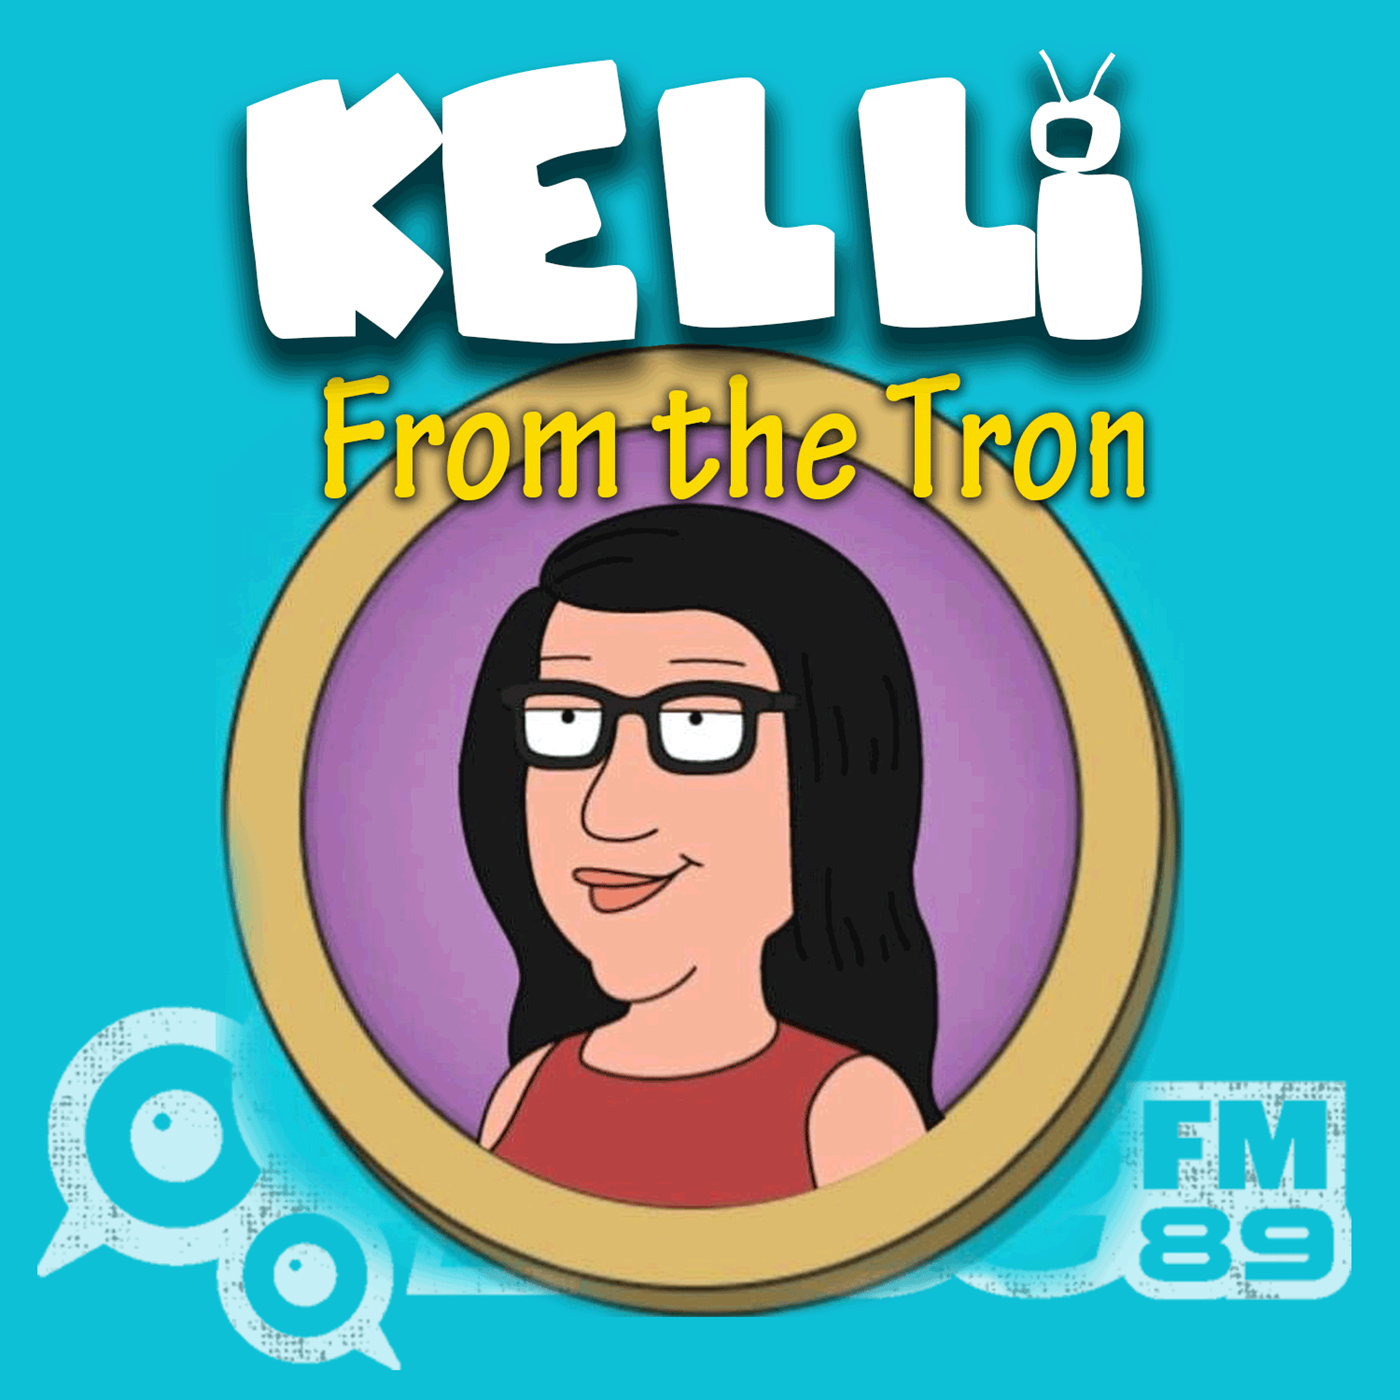 Kelli From the Tron - 23-08-2019